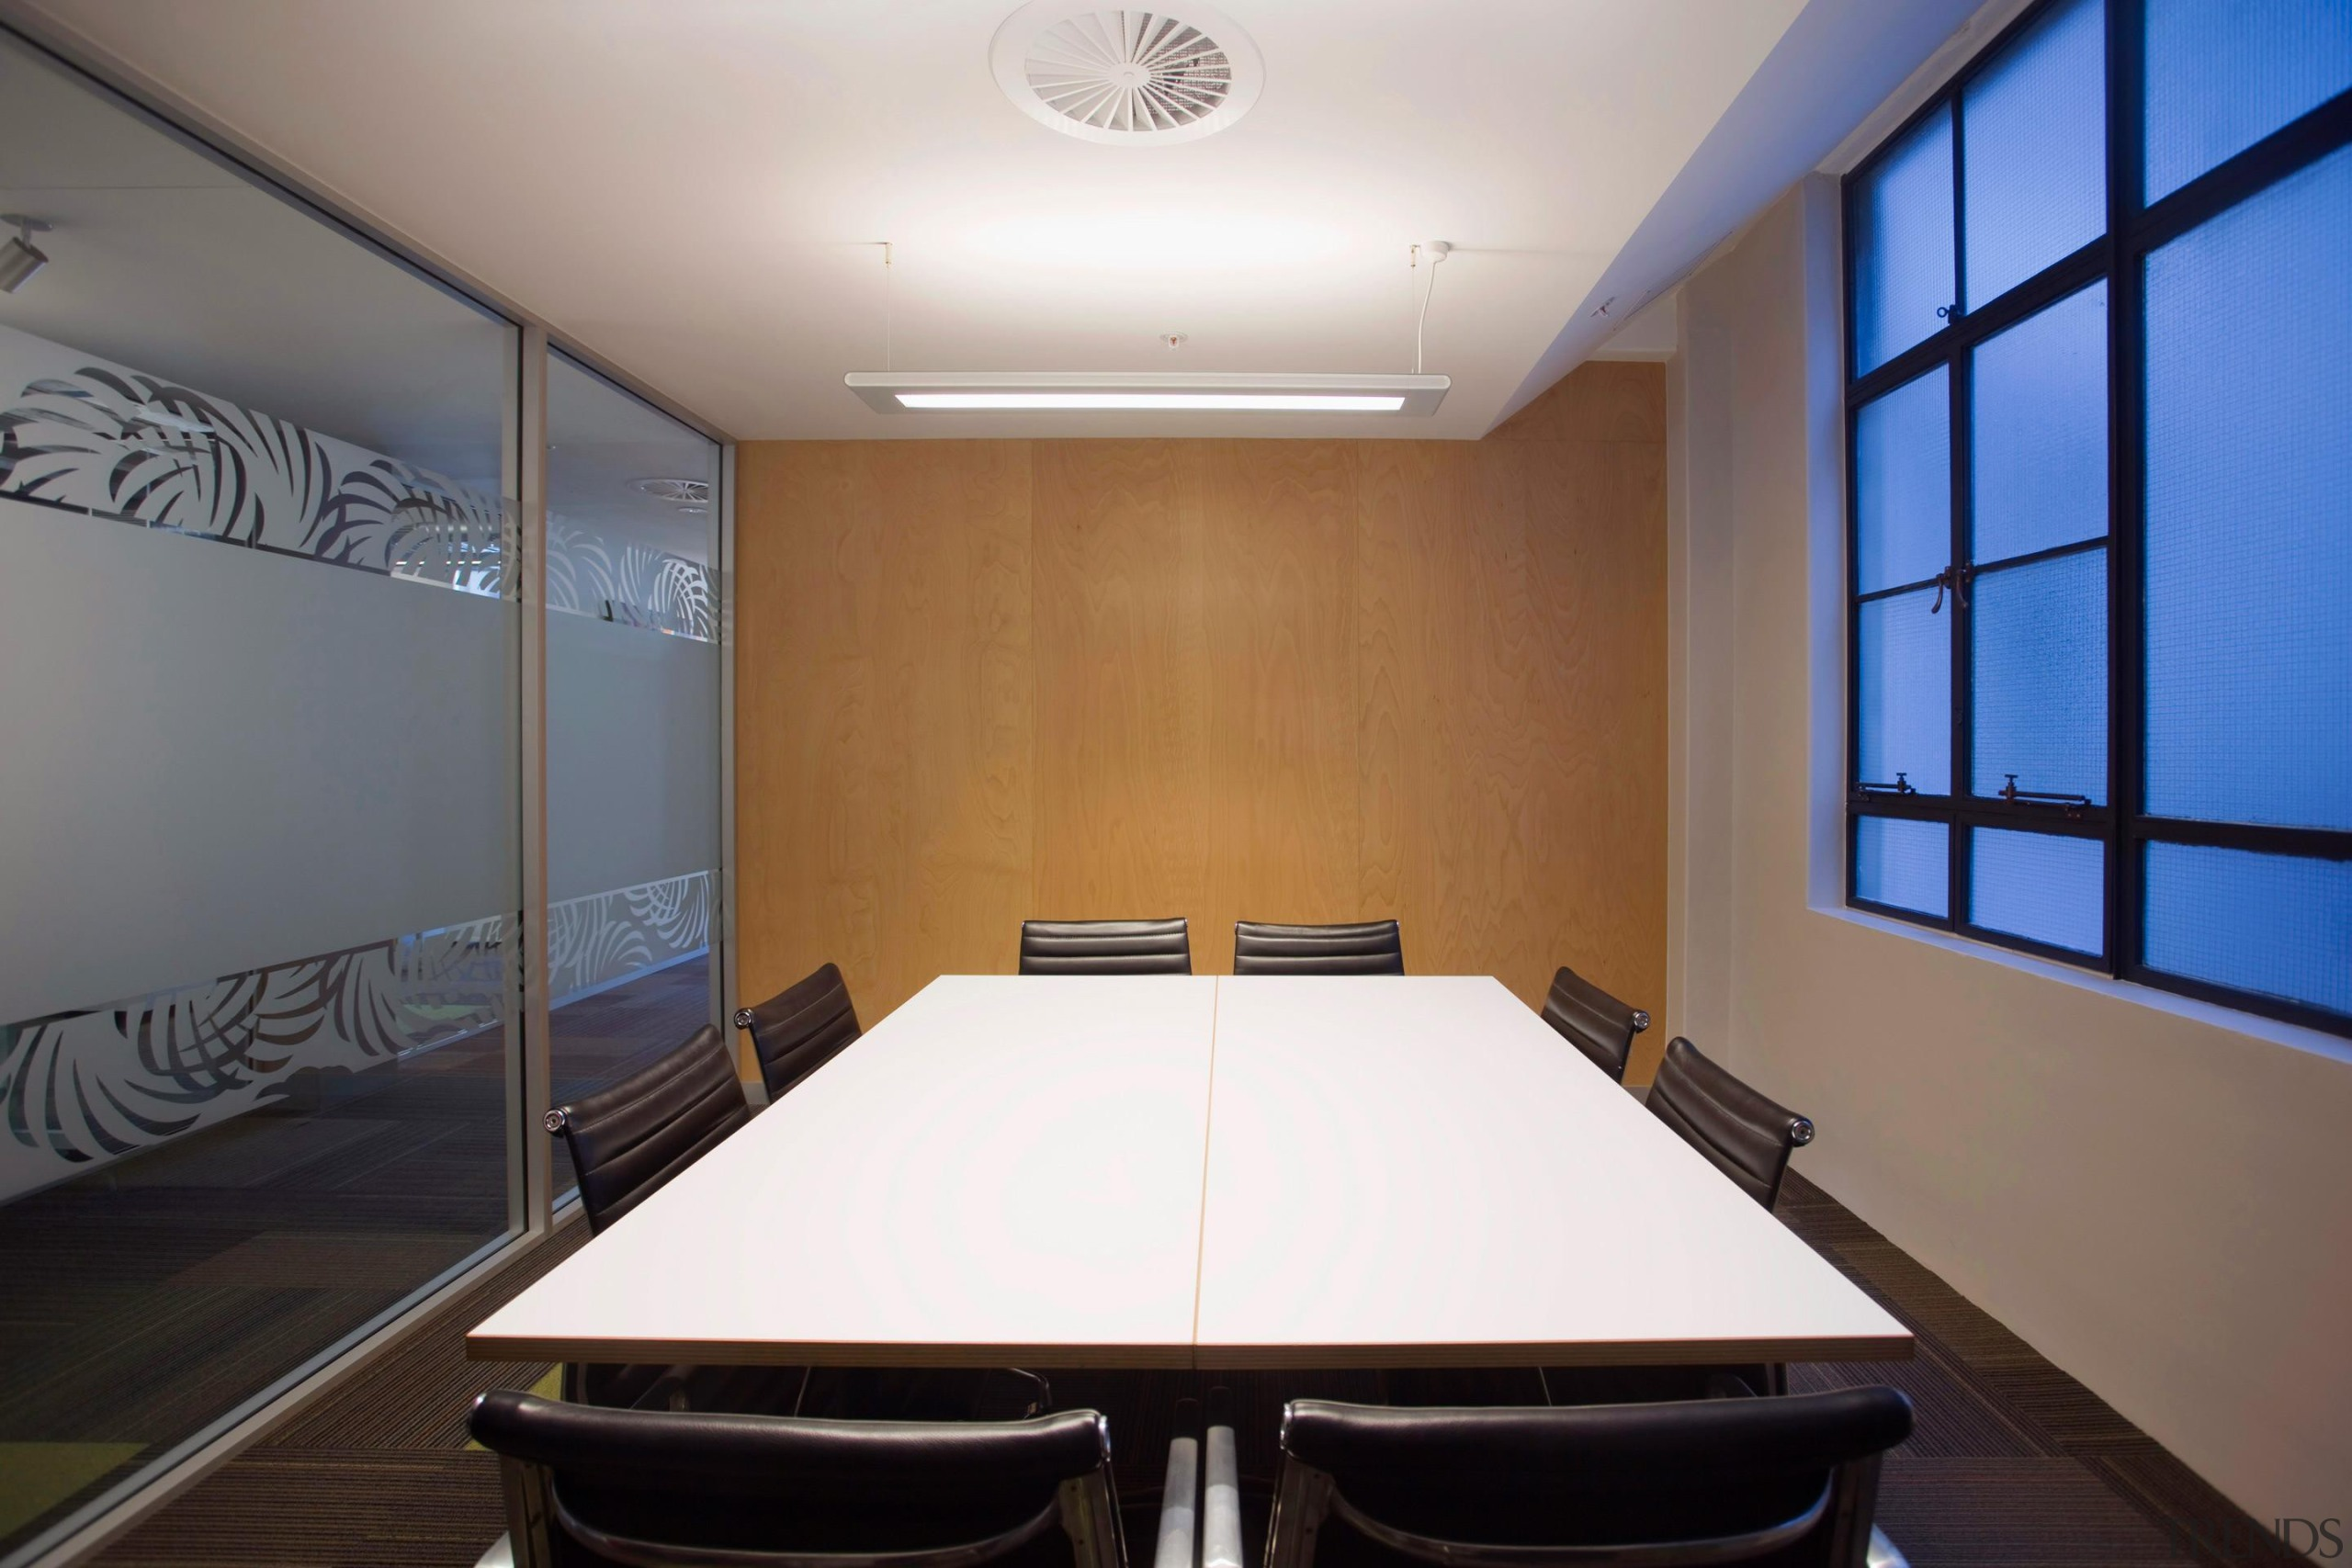 Lower ceilings in the meeting rooms fold up ceiling, conference hall, daylighting, interior design, office, property, real estate, room